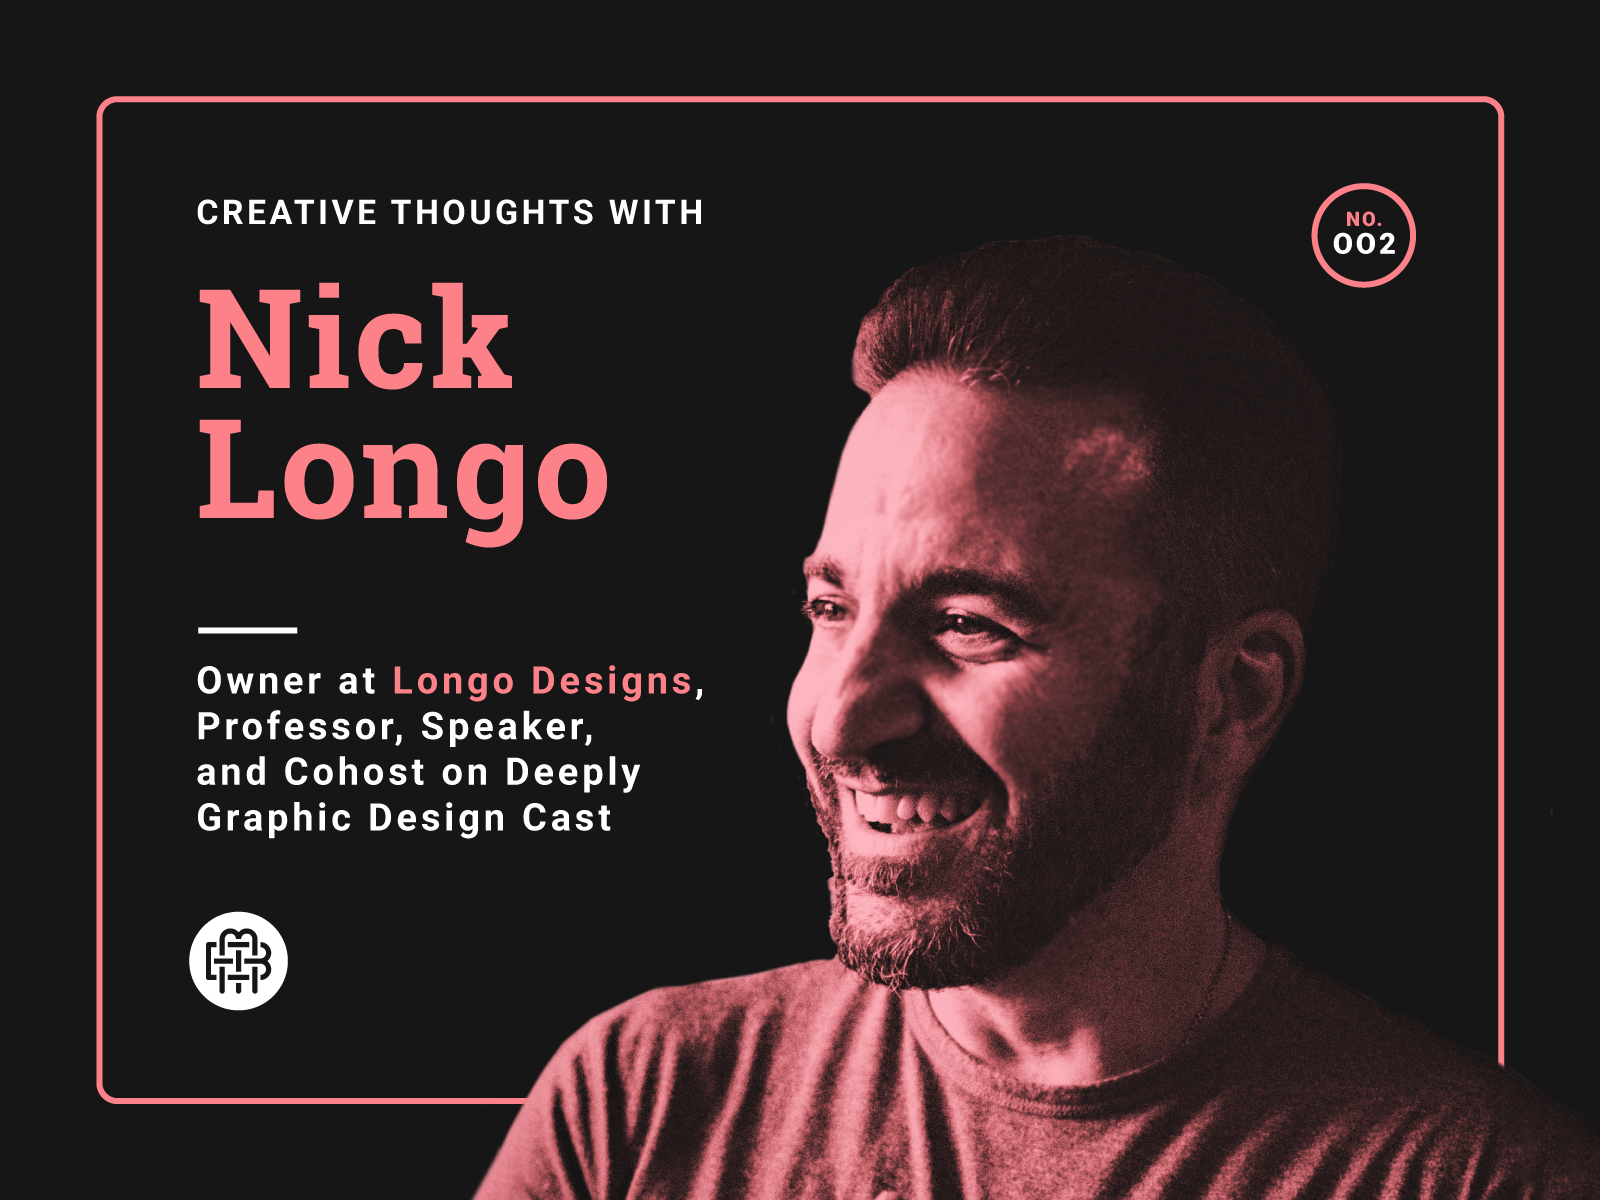 Nick longo creative thoughts dribbble